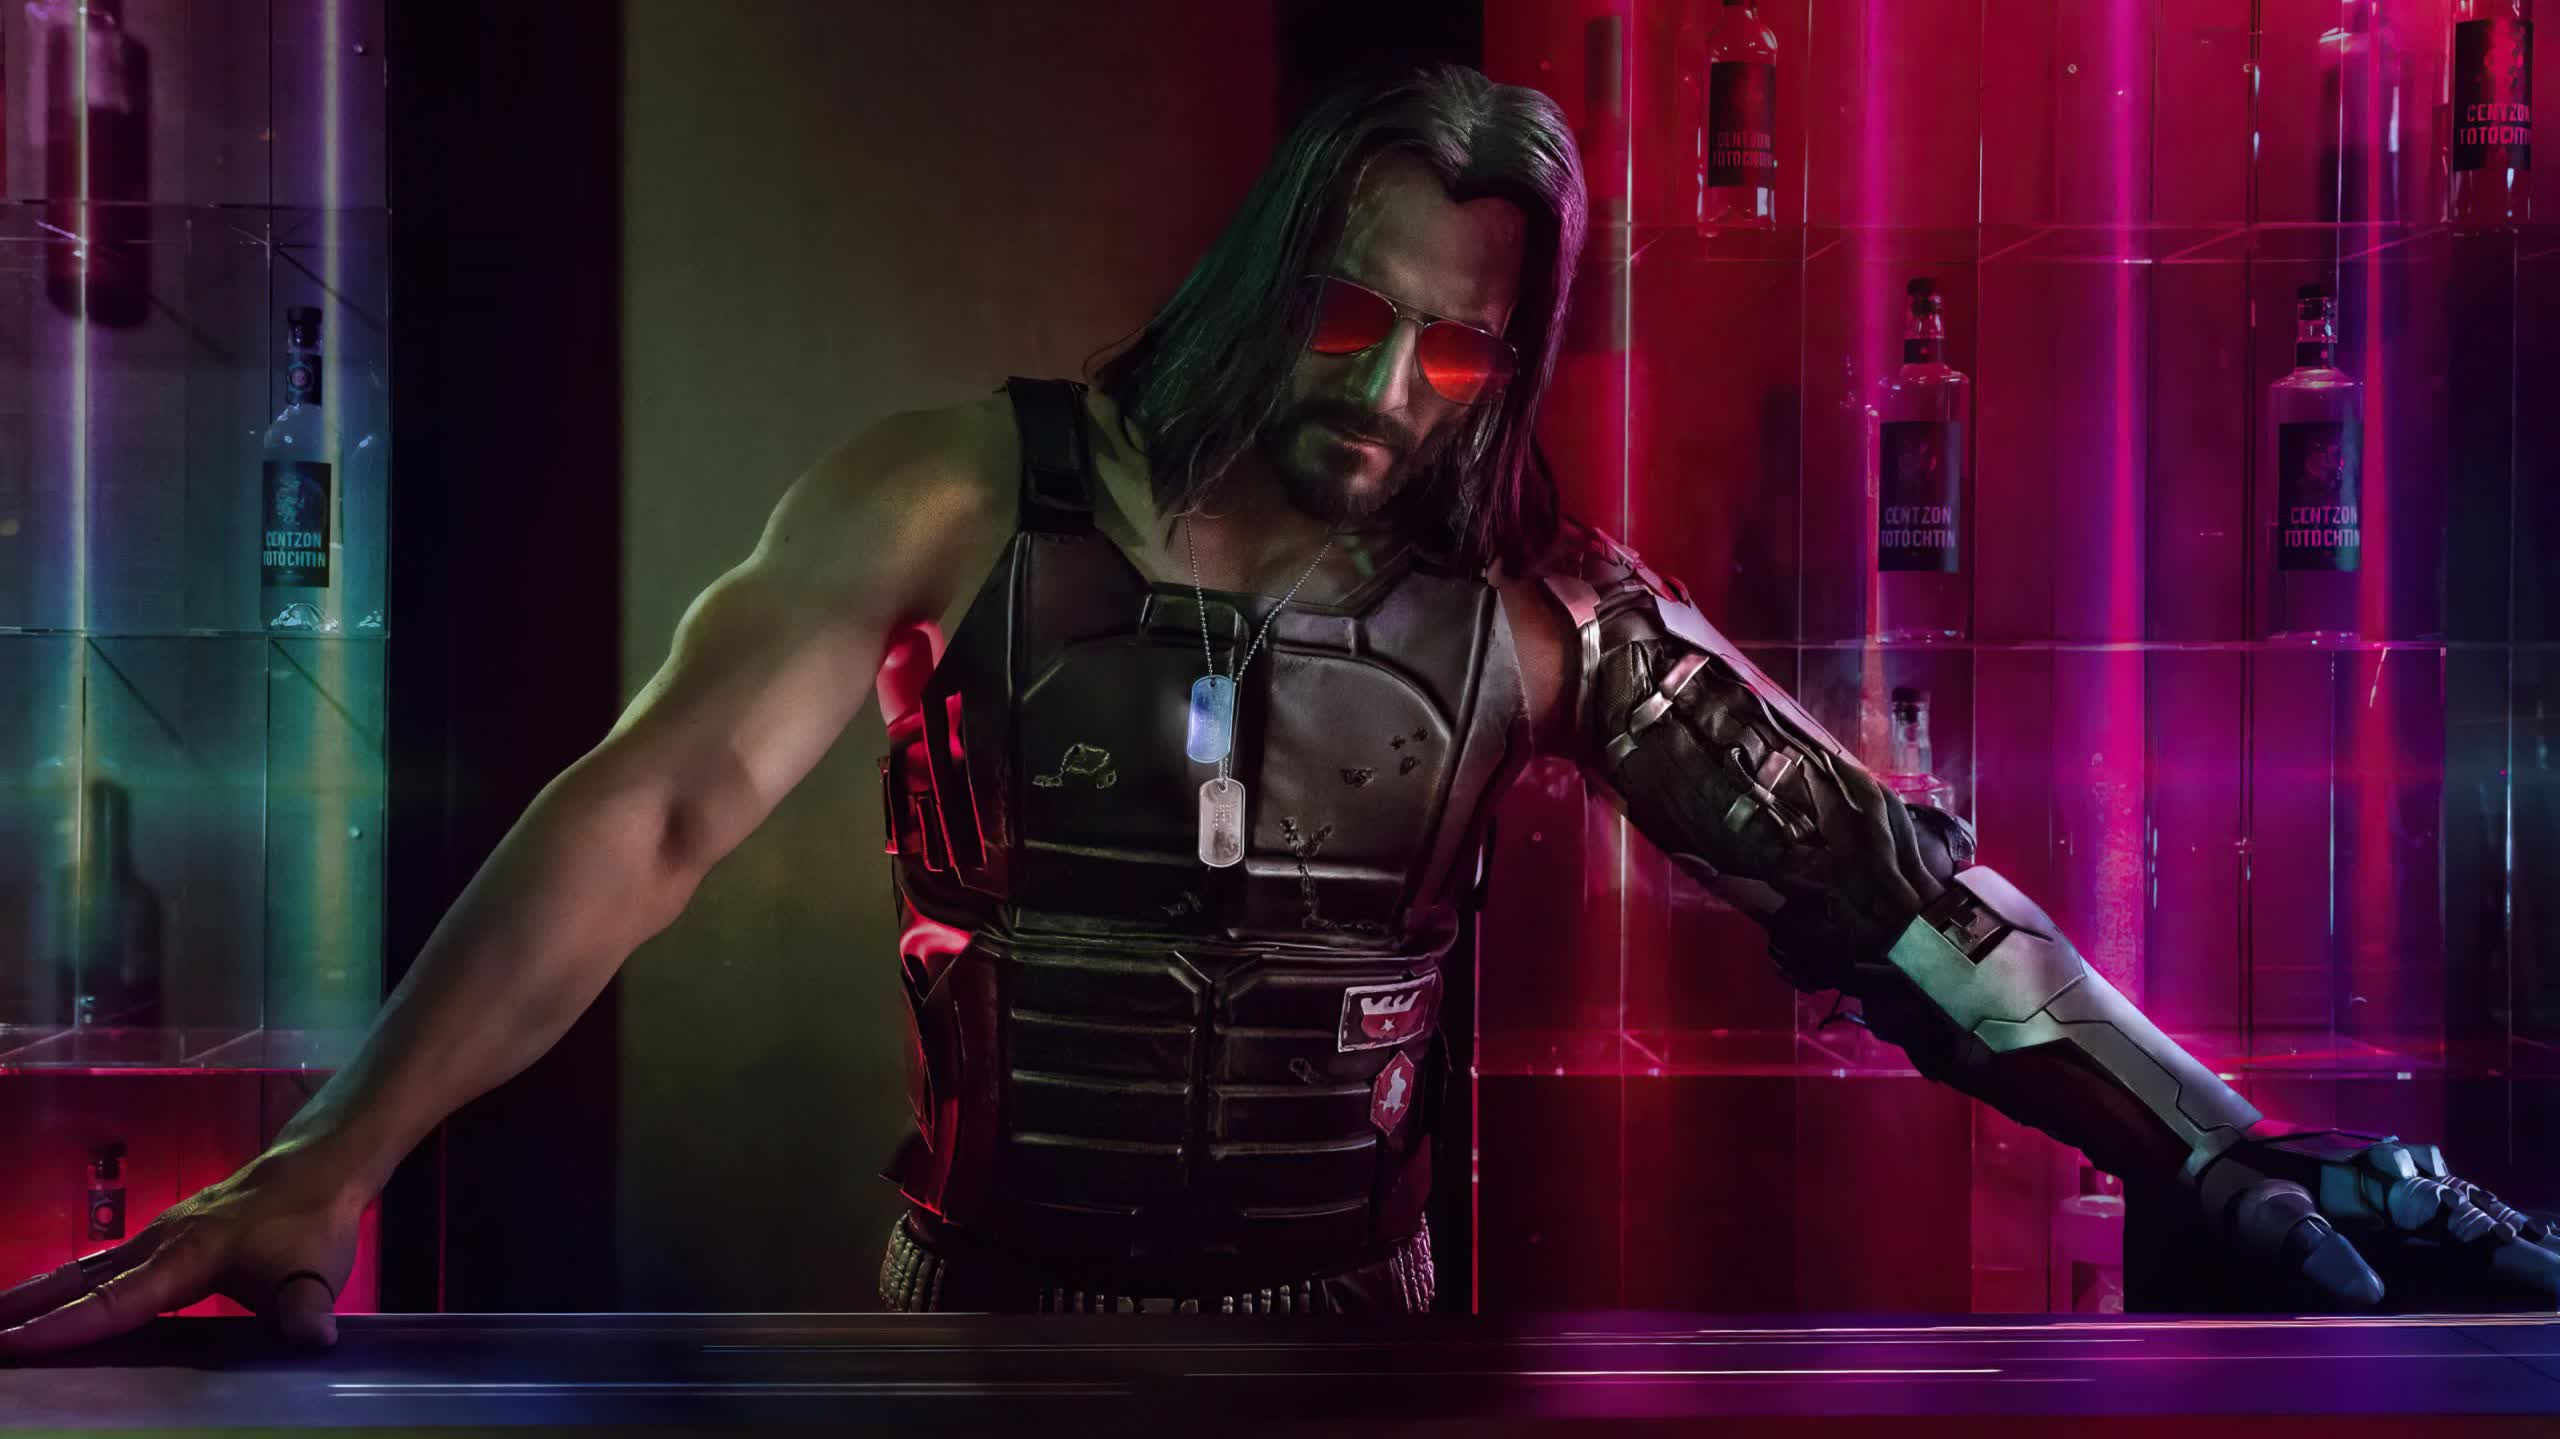 CDPR says you can't mod Johnny Silverhand into a joytoy in Cyberpunk 2077